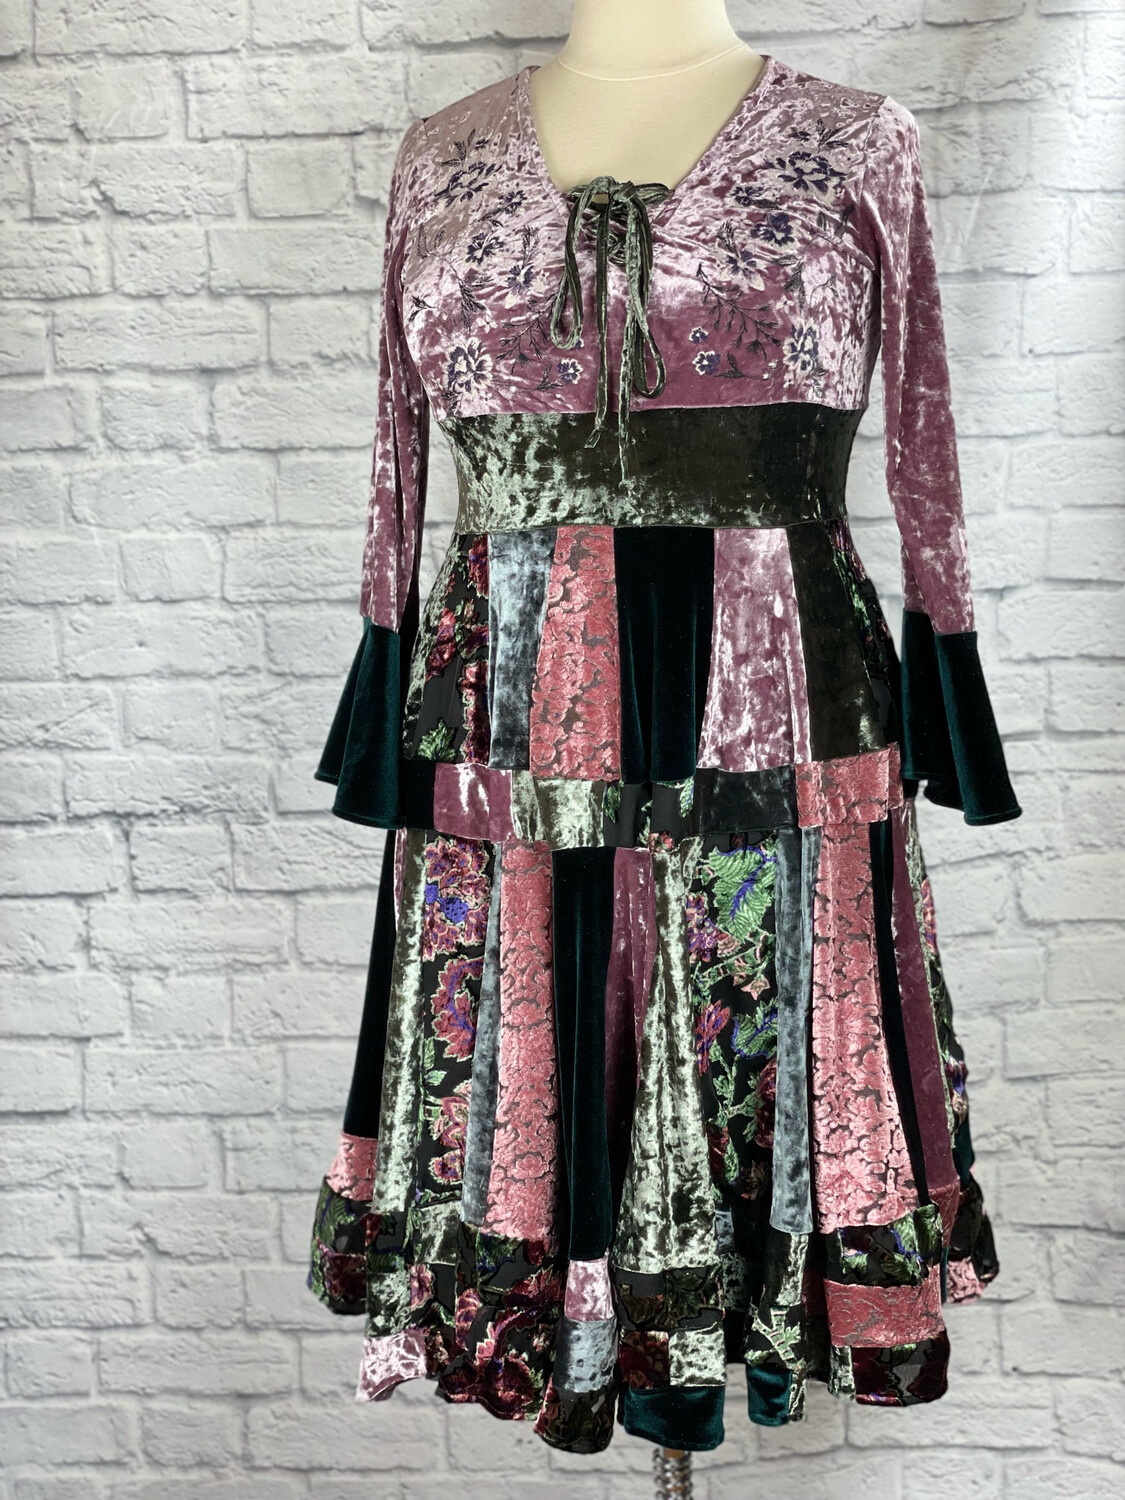 S Threads Upcycled Dress Velvet Renaissance Panel Patchwork Lace Up Bell Sleeve Fits Size M/L/XL/2X